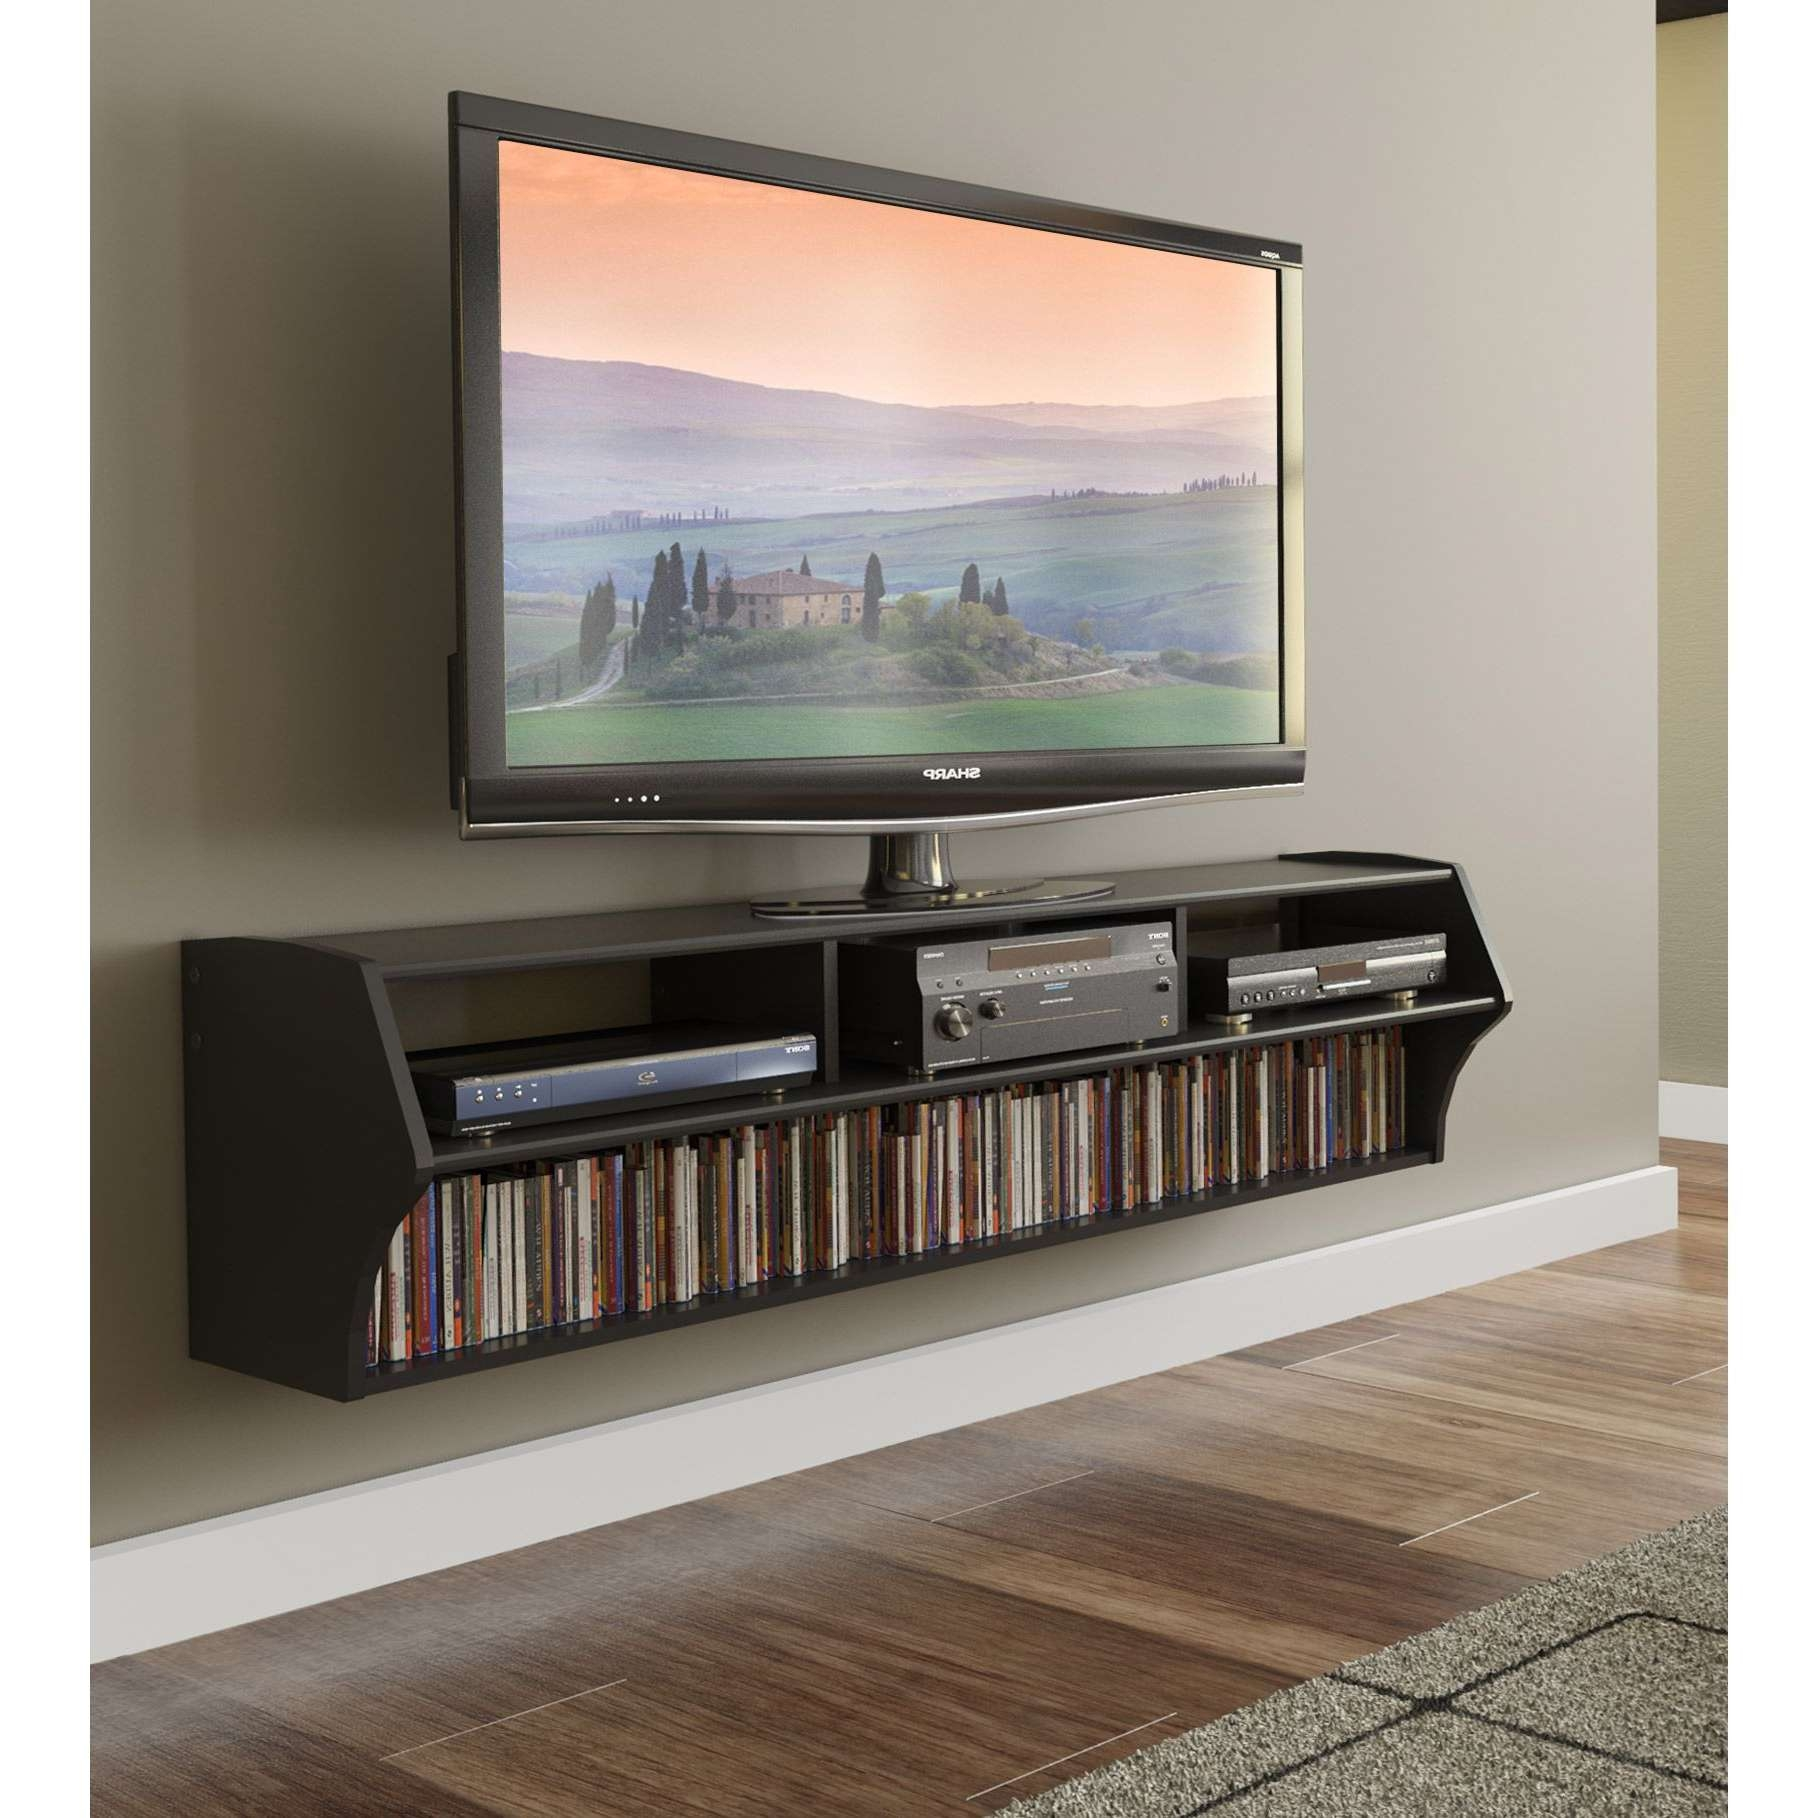 Wall Mounted Tv Entertainment Center Enchanting On Home Decors For Pertaining To Modern Wall Mount Tv Stands (View 7 of 15)